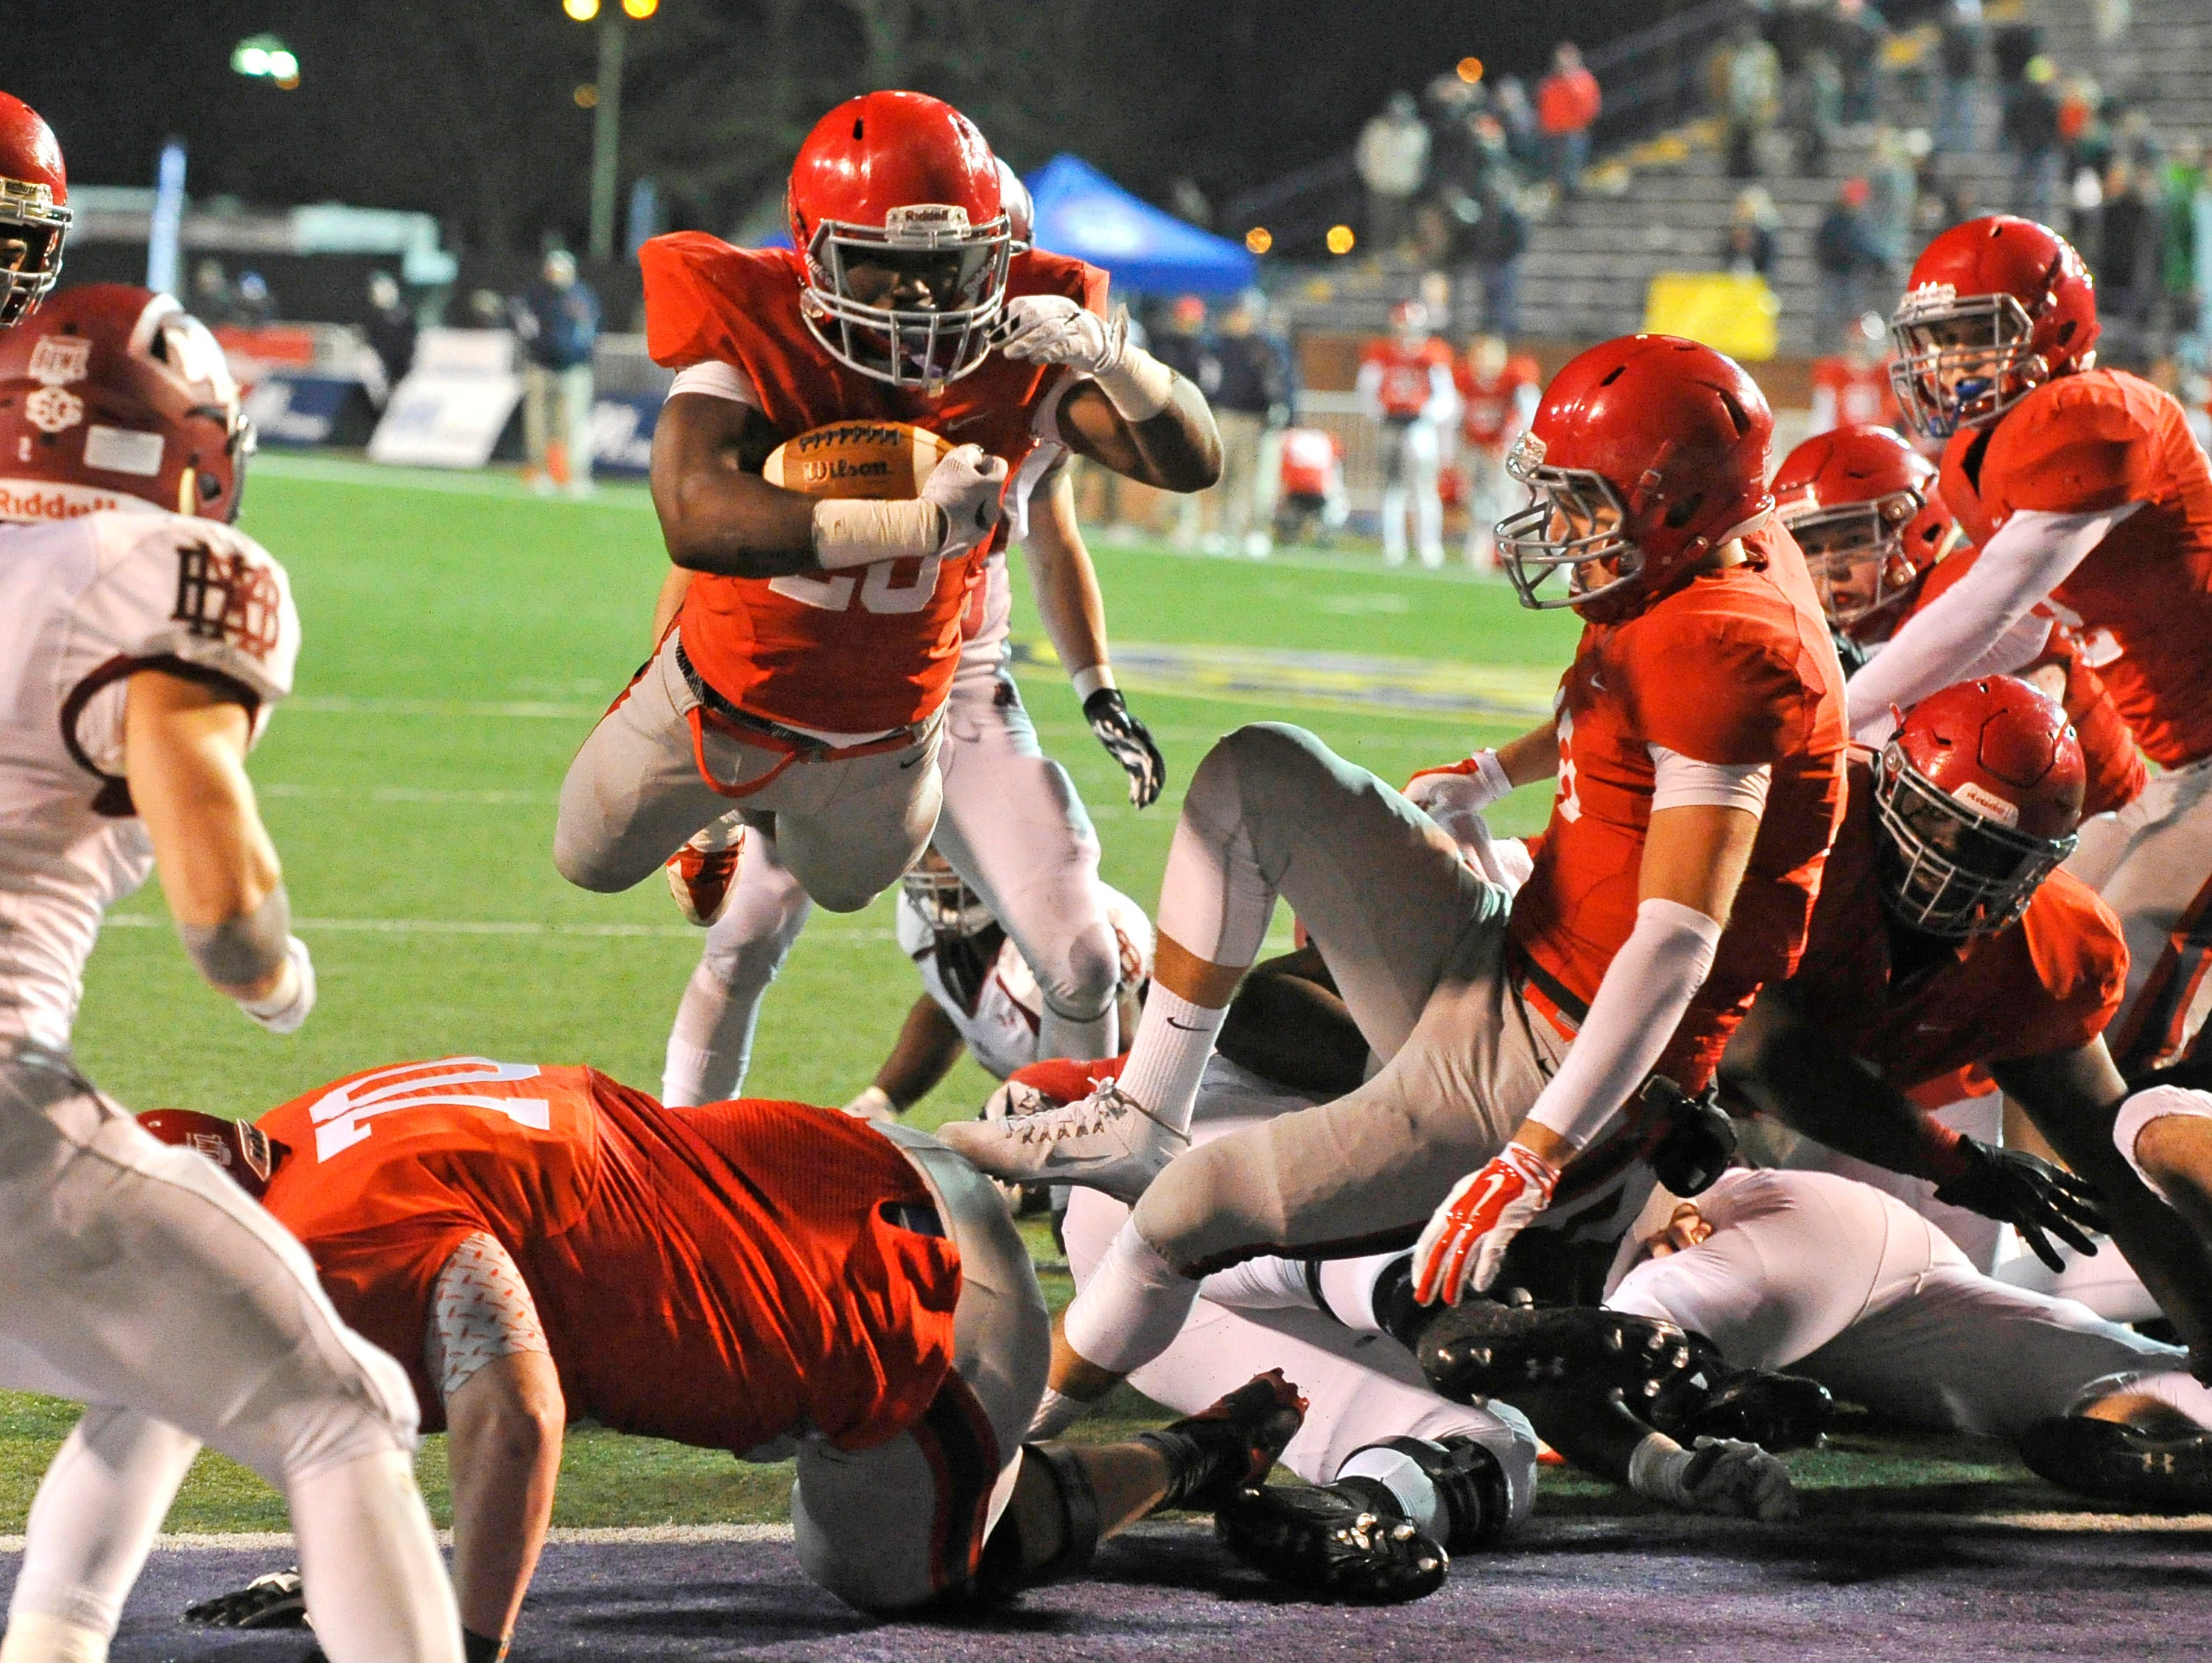 Brentwood Academy's Prince Momodu dives for the 2-point conversion to tie the BlueCross Bowl DII-AA state title game and sent it into overtime on Dec. 3, 2015, in Cookeville.